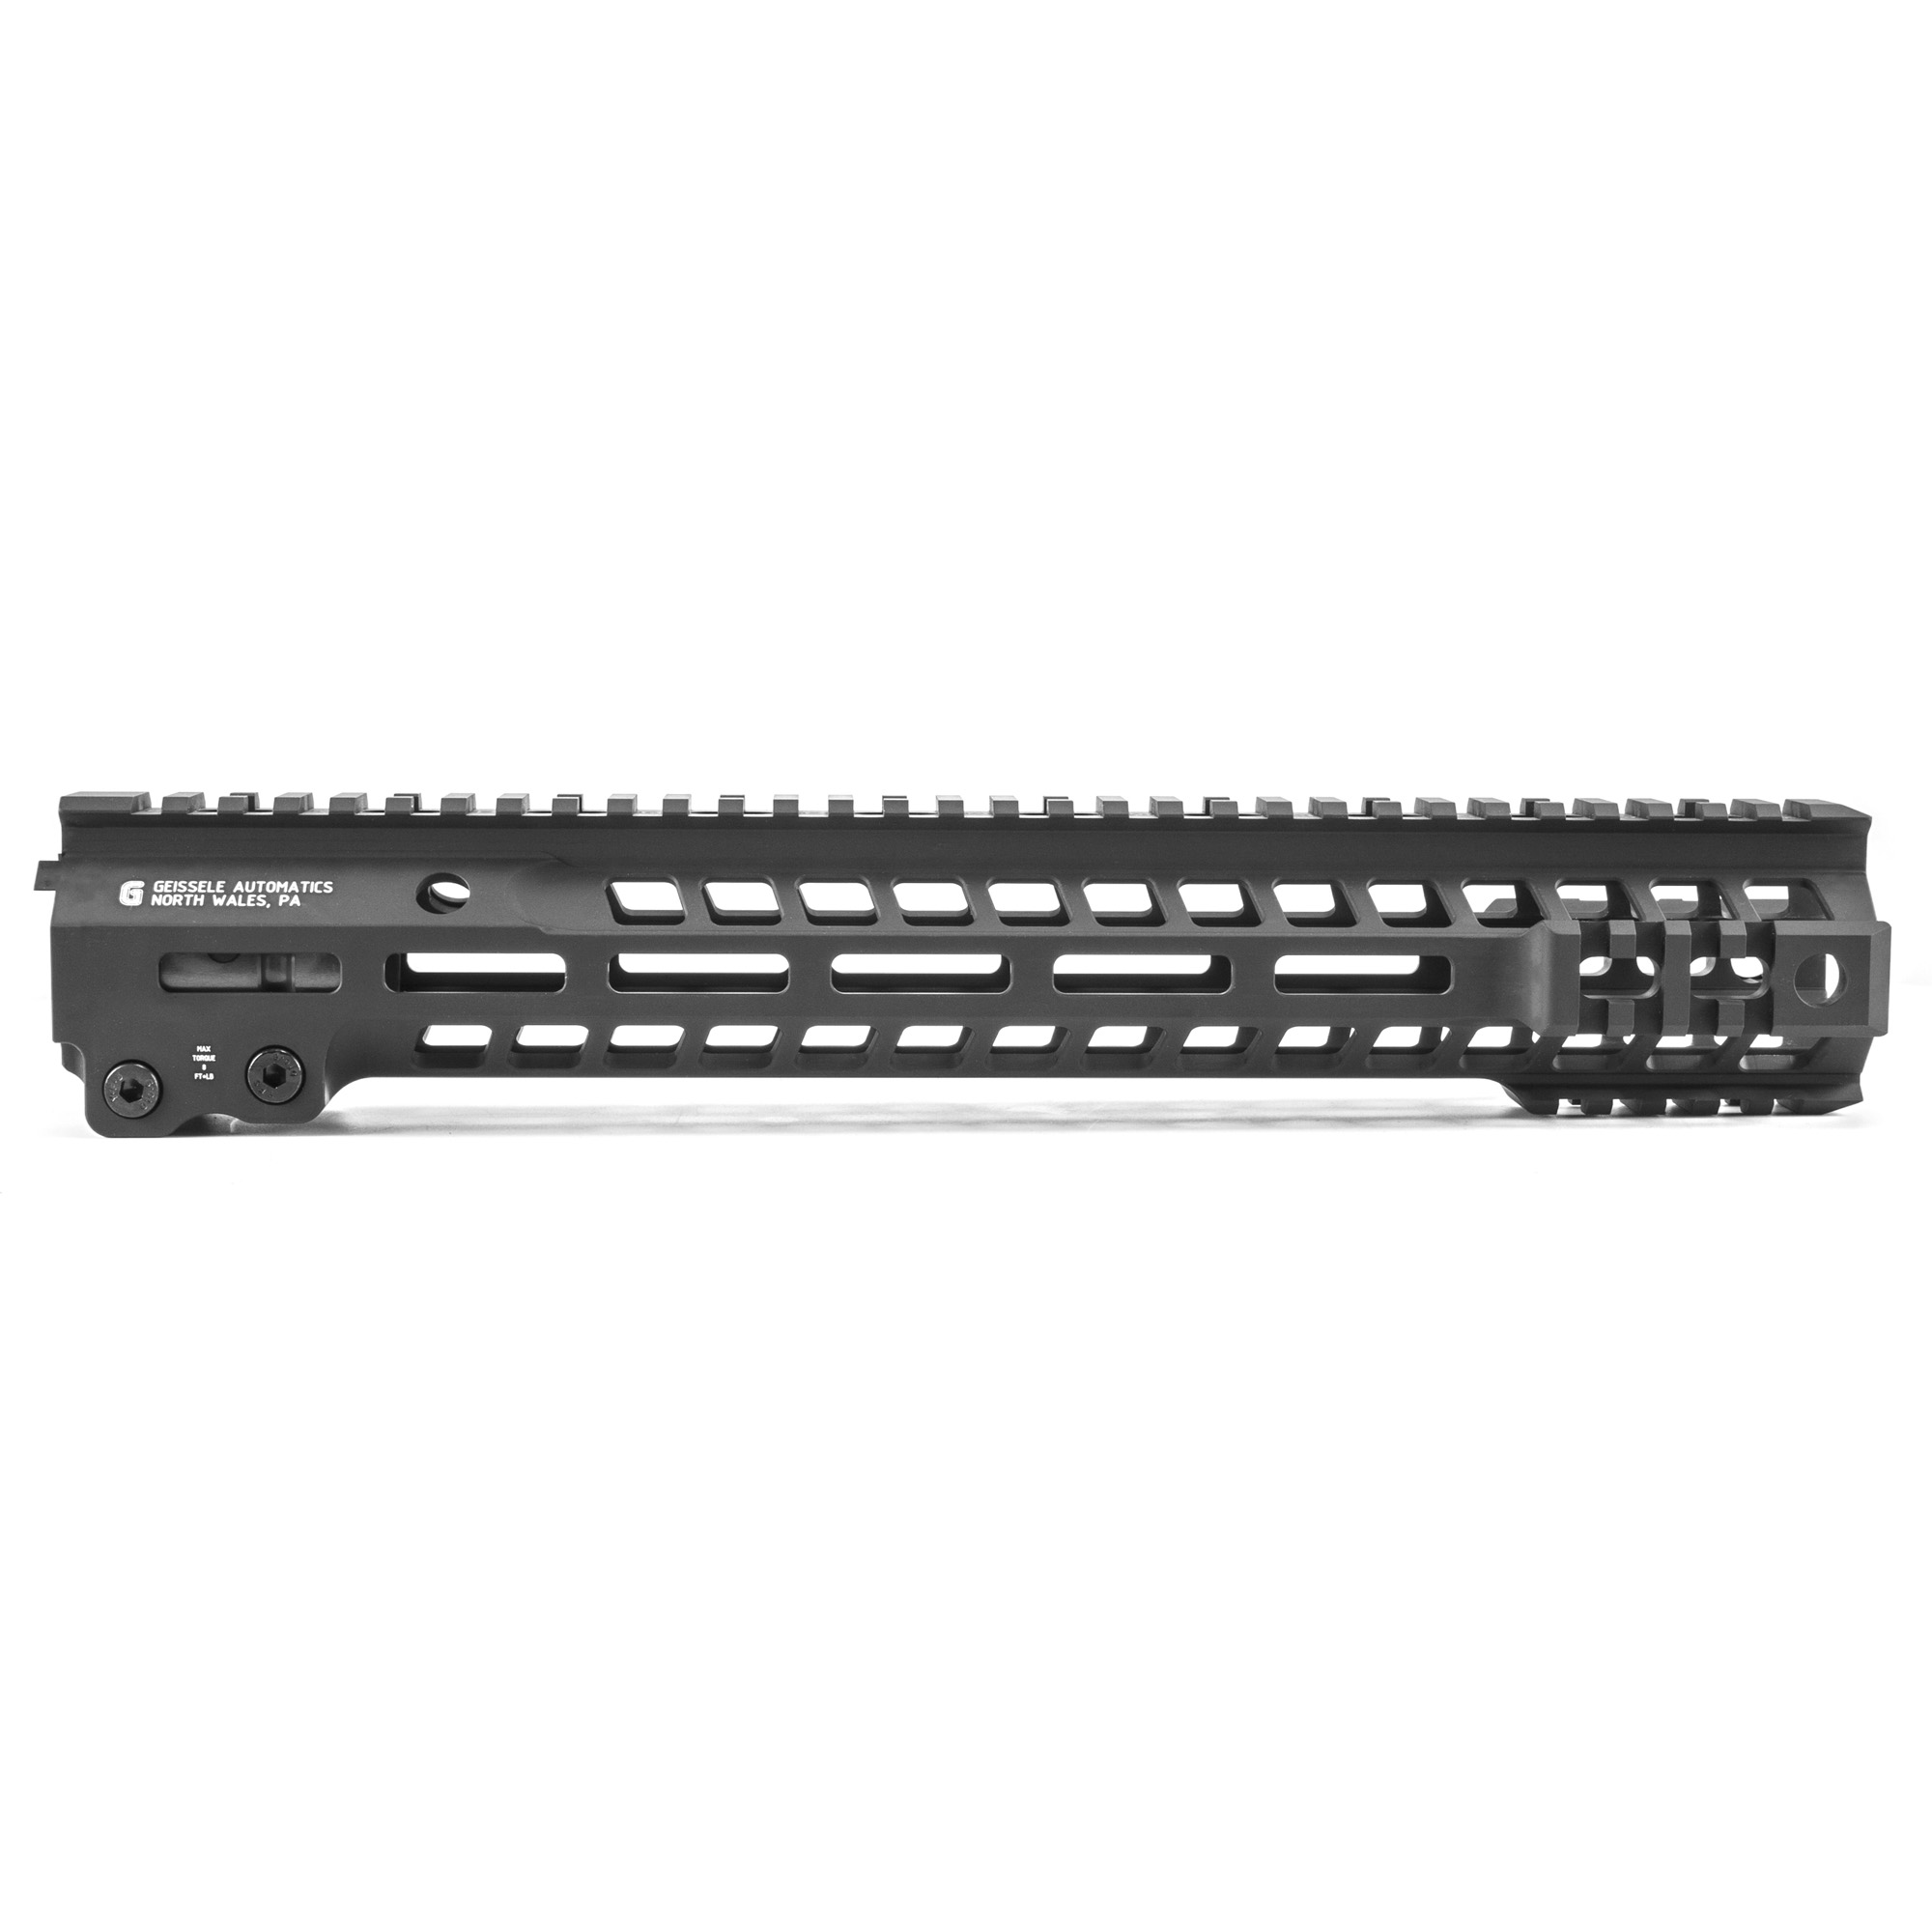 """Geissele's Automatics Super Modular MK13 M-Lok AR-15 13"""" Free Float Hand Guard"""" is the latest entry to the Geissele line up of Super Modular Rails The new handguard design offers a smaller diameter and overall height to create a slimmer package. Included with the MK13 Super Modular Rail is an updated version of the proven Geissele Barrel Nut design"""" not only providing ease of installation but superior rigidity. The long surface contact of the 2.25"""" barrel nut interfaces with the receiver creating a platform that can be trusted to be straight and true the entire length of the free float rail. The MK13 is precision machined using 6061-T6 aluminum due to its strength"""" rigidity and lightweight properties. Utilizing Magpul's M-LOK technology in the 3"""" 6"""" and 9 o'clock positions and machined-in Picatinny rails at the end allow the end user to customize their rifle and securely mount lights"""" bipods and other firearm accessories. The Geissele MK13 Super Modular rail is Type 3 Hardcoat Anodized. This product is bundled with a low-profile Geissele Super Gas Block."""